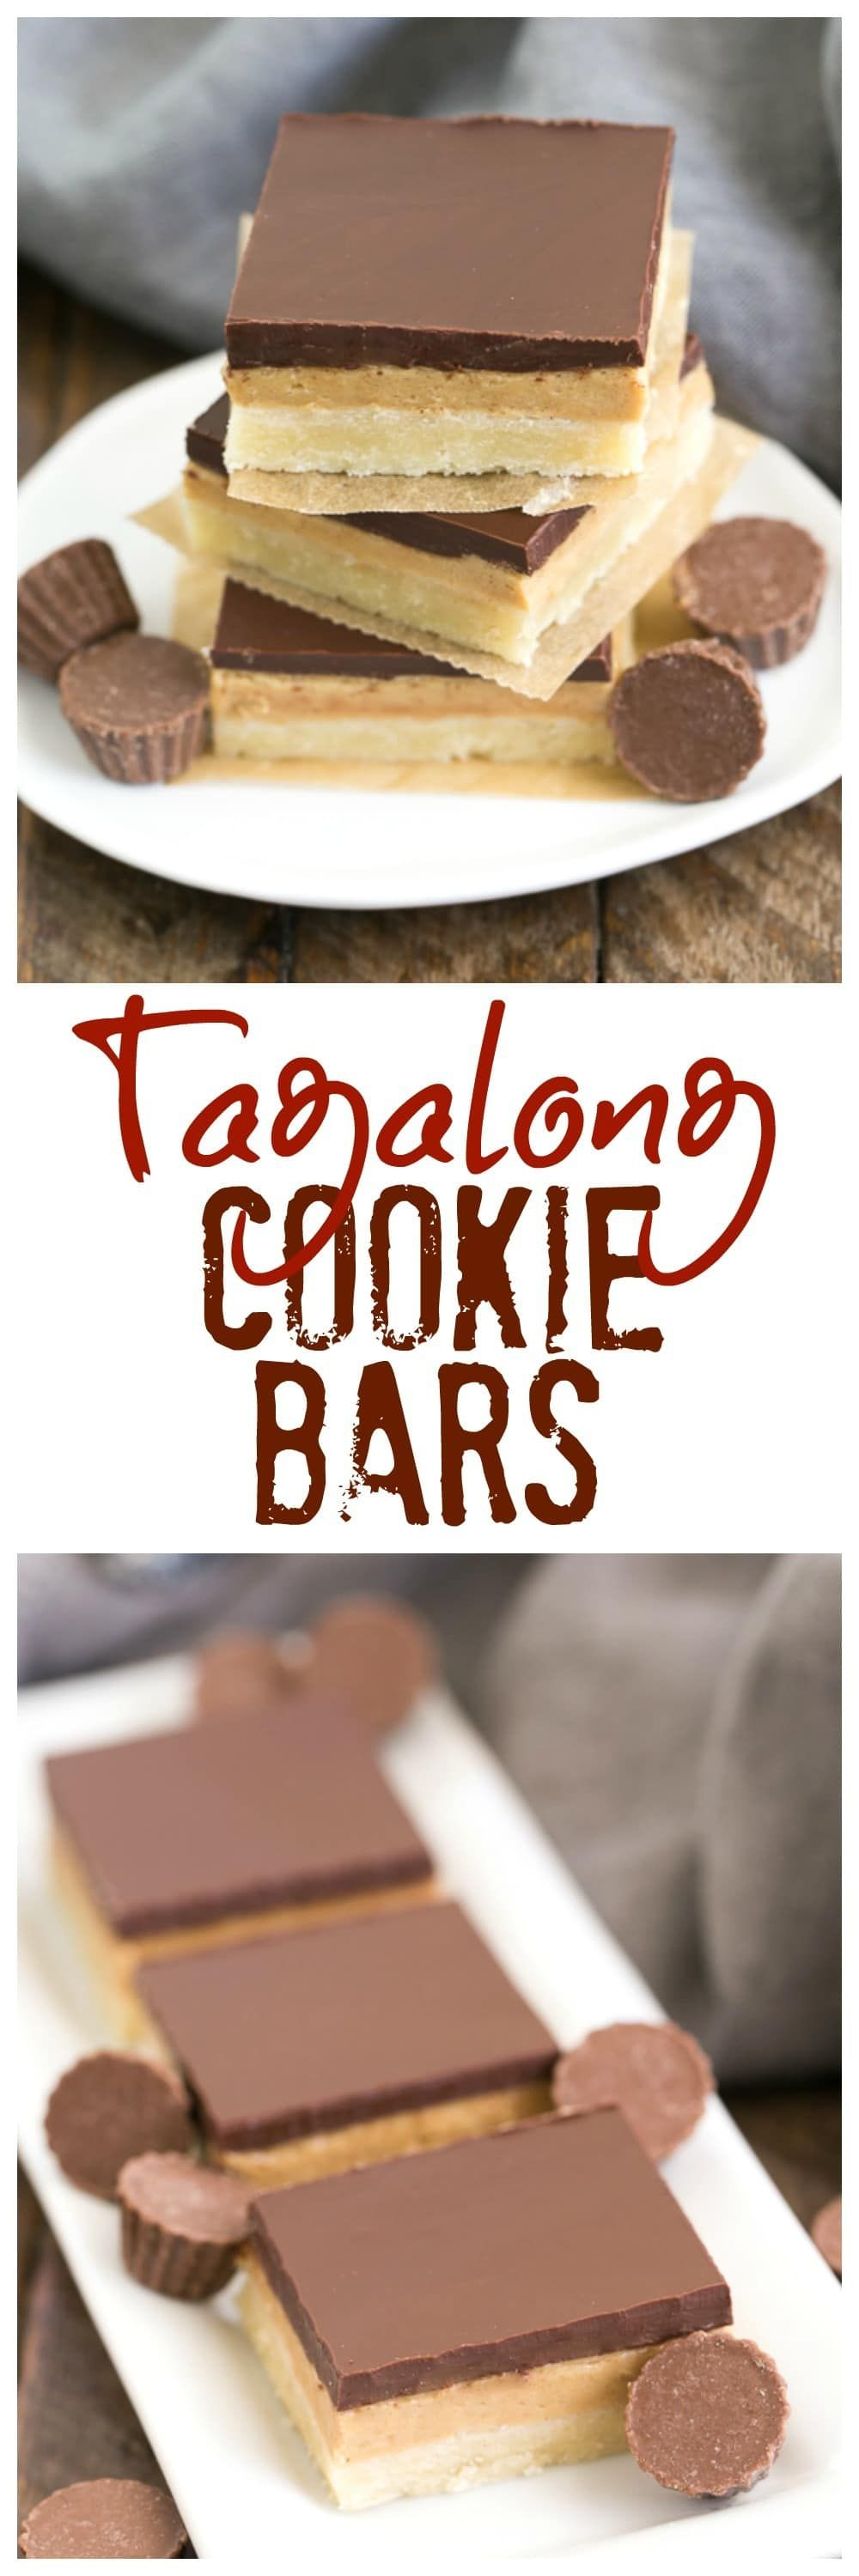 Tagalong Cookie Bars